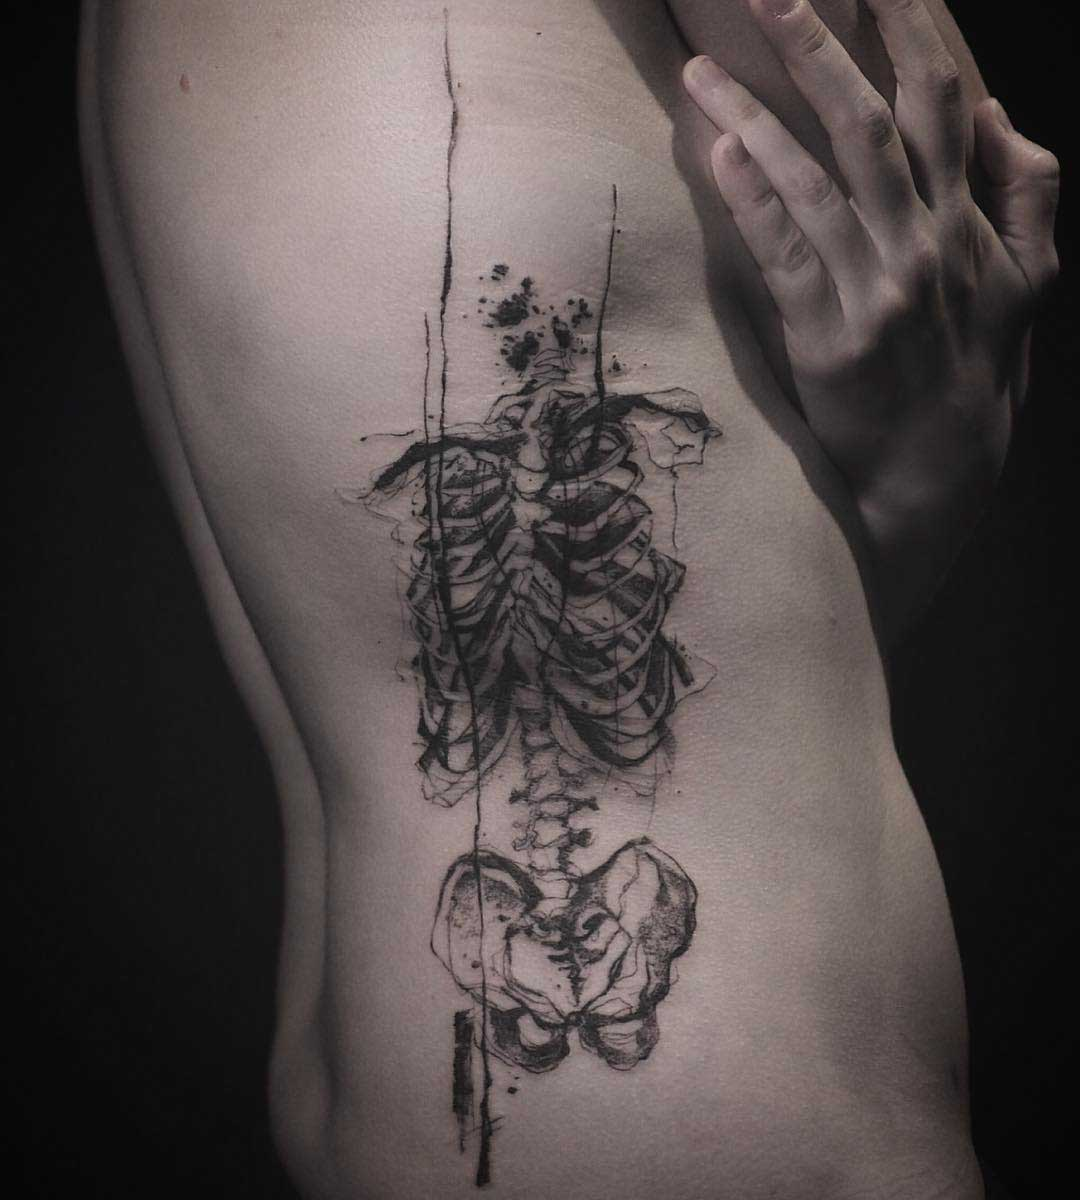 pencil drawn skeleton tattoo on ribs